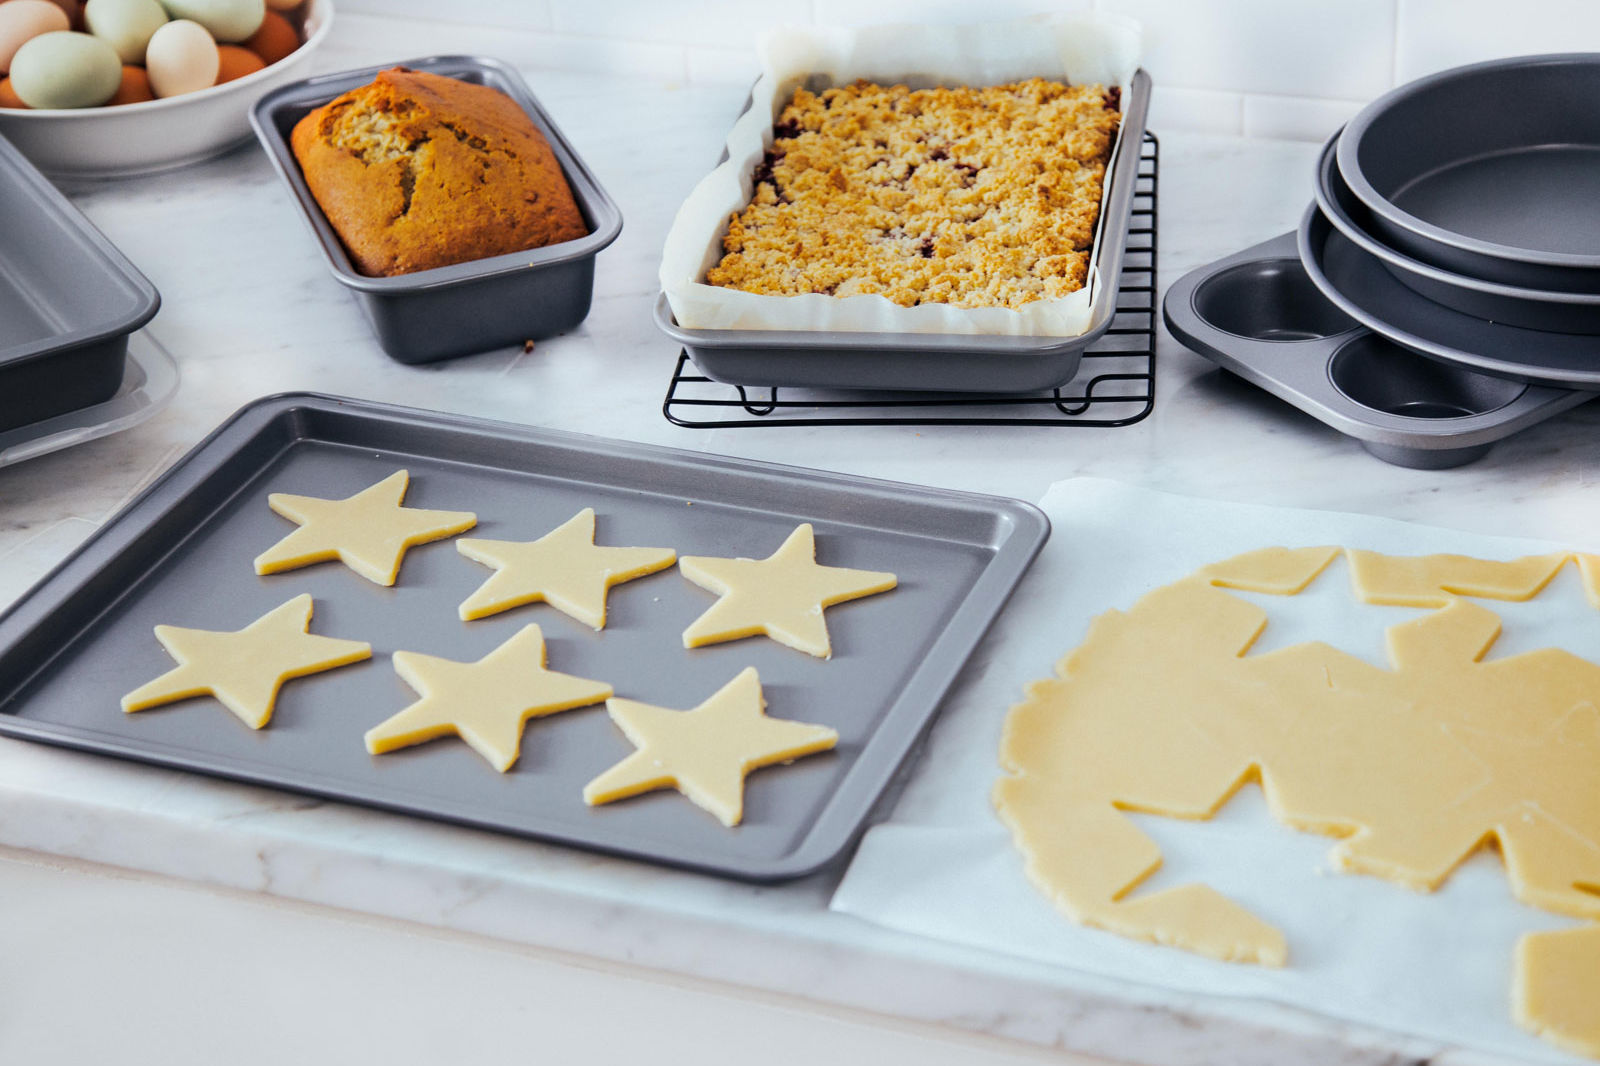 For the First Time Ever, Martha Stewart Is Selling Her Own Line of Food at Macy's